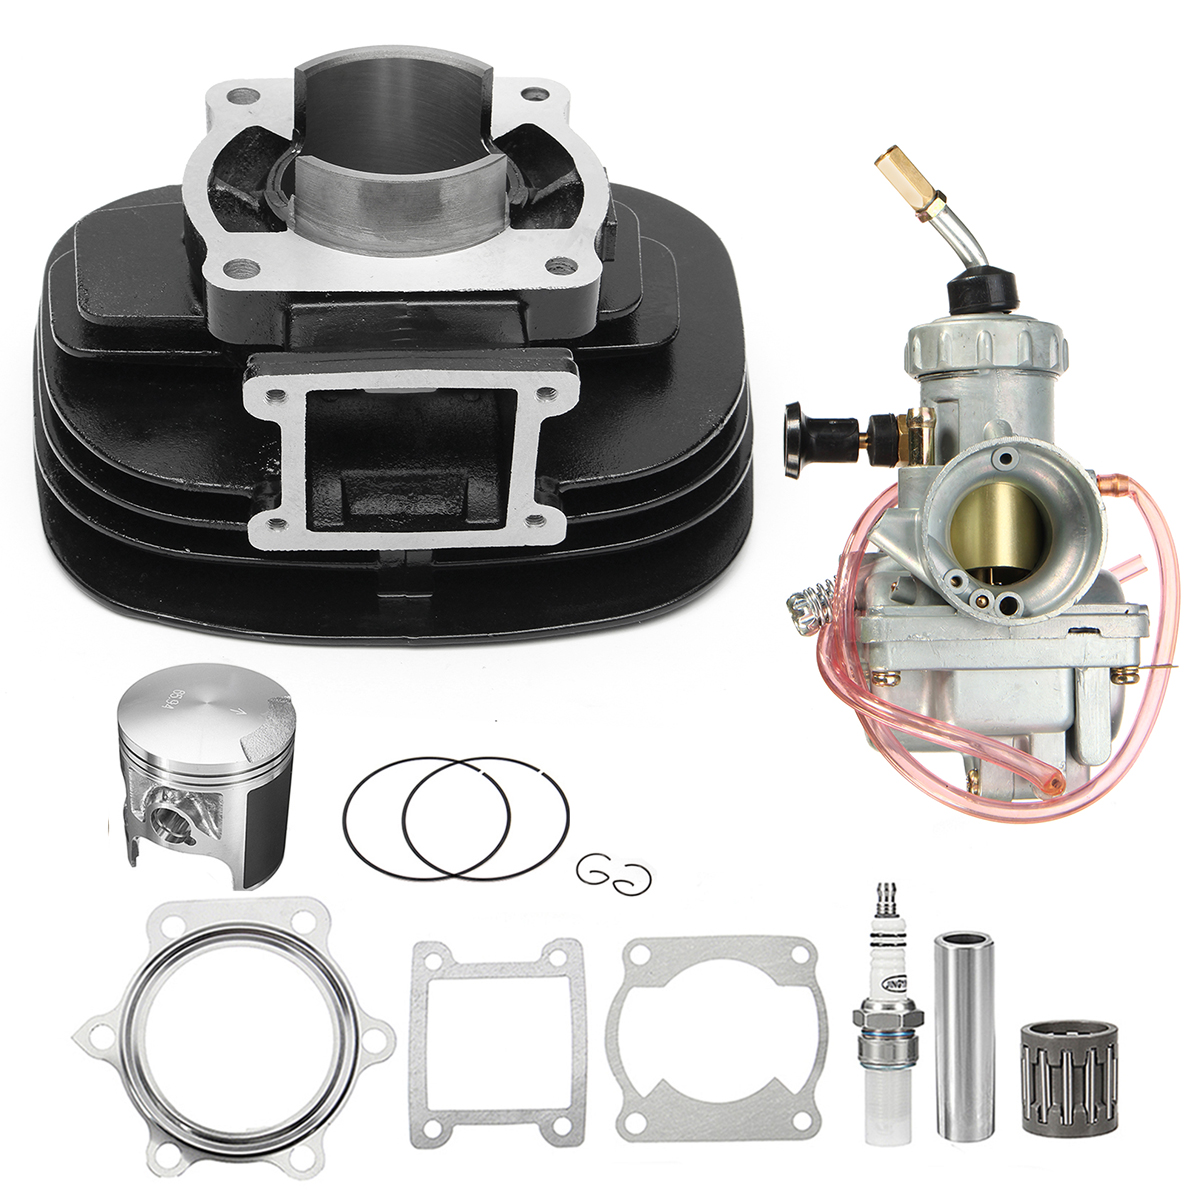 Cylinder Carburetor Carb Piston Gasket Top End Kit For Yamaha YFS200 Blaster 200